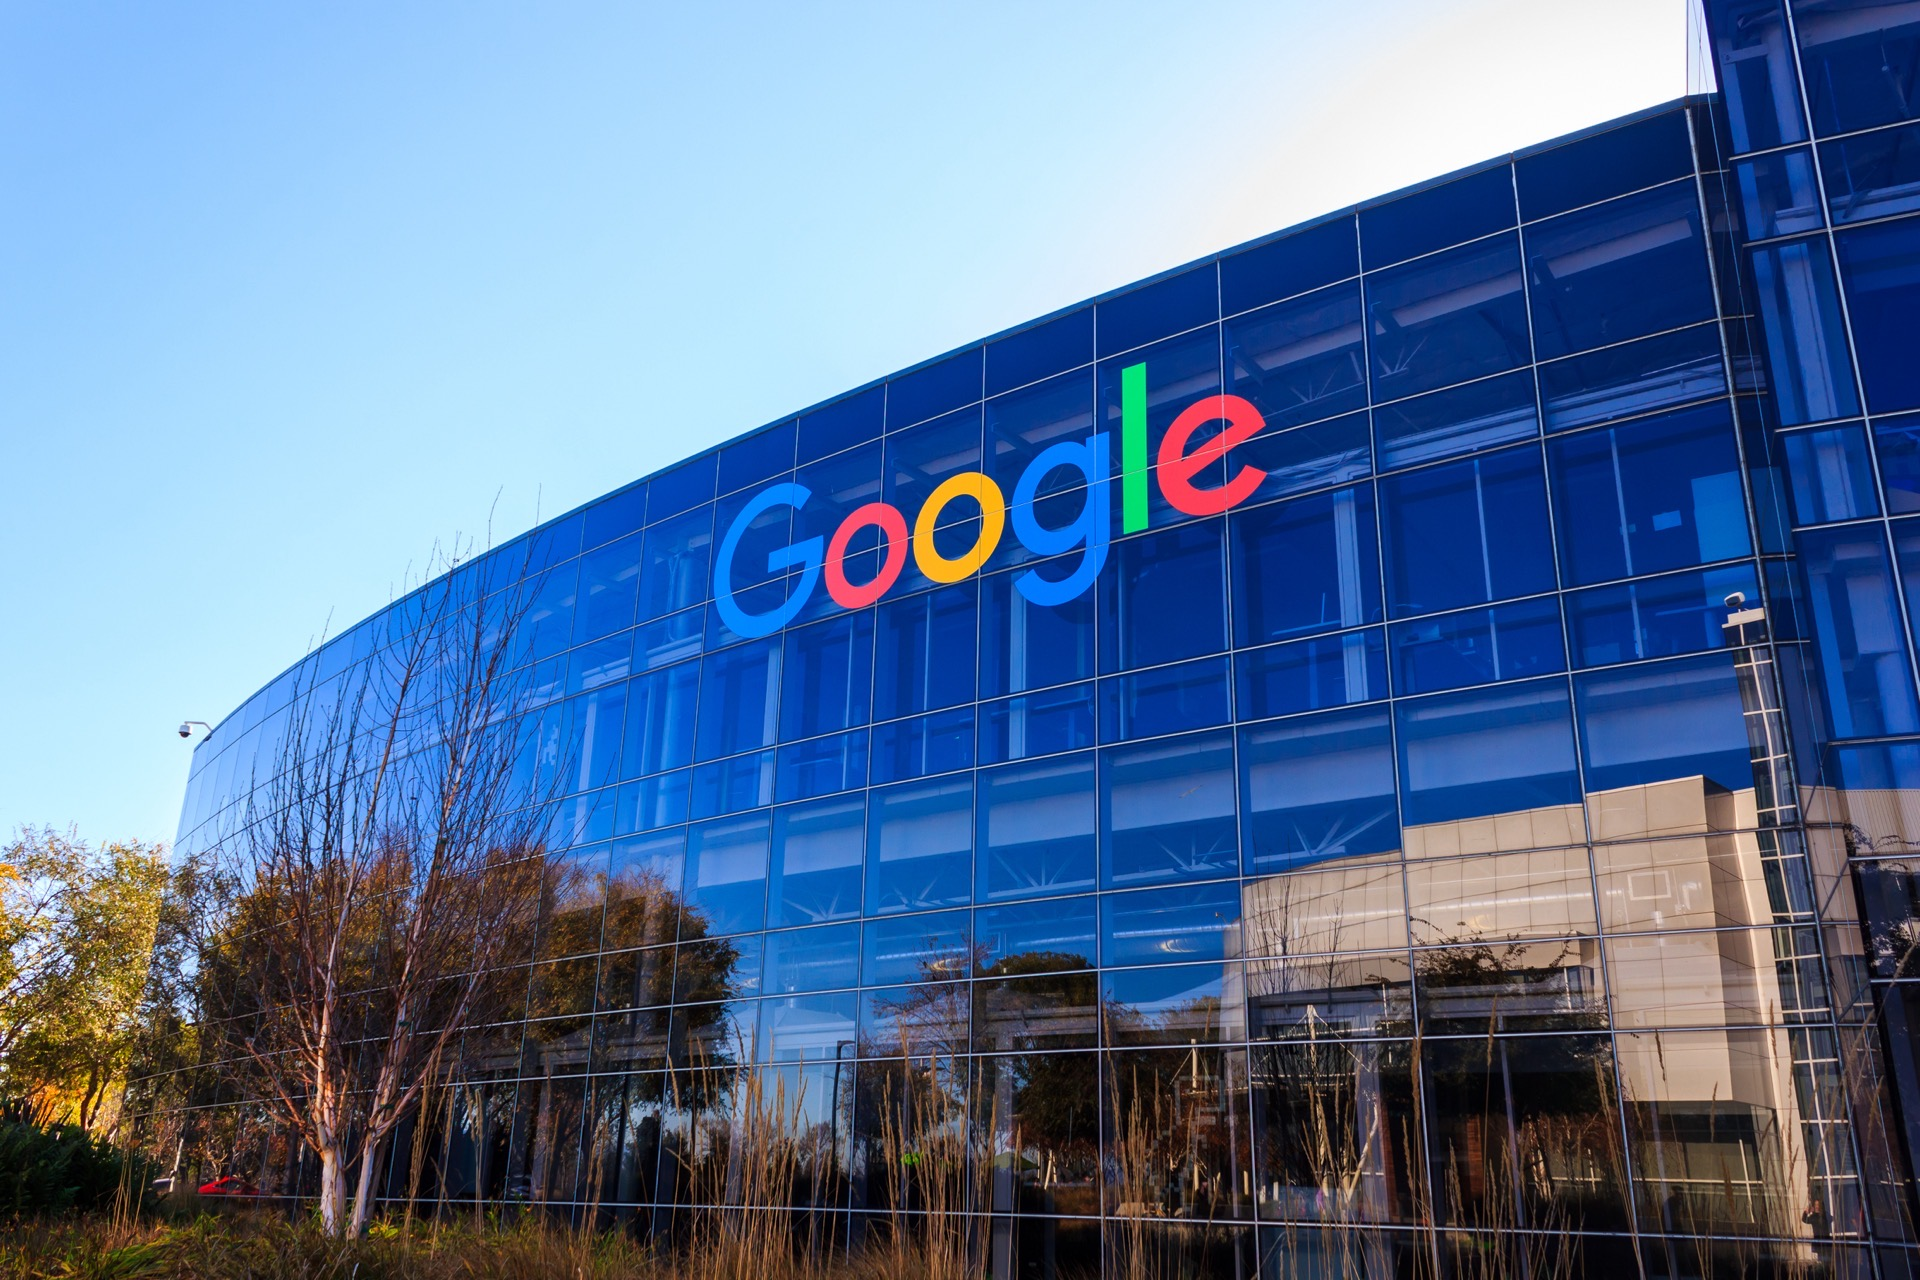 Discrimination and evil at Google? You must be mad